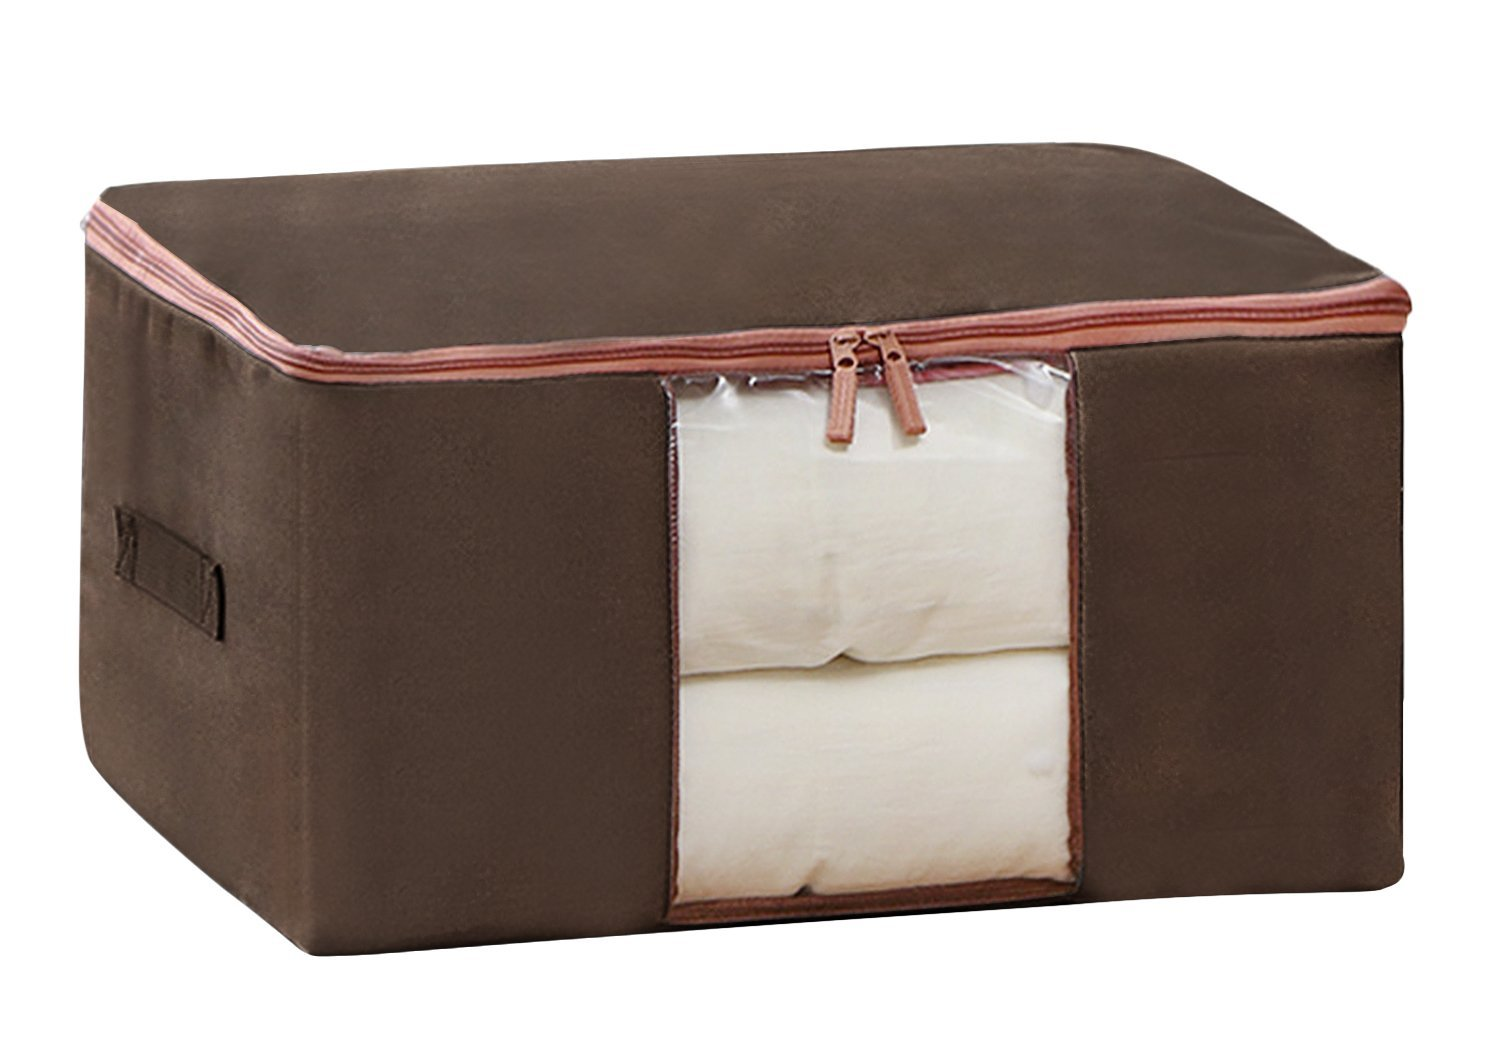 Moonlove Dampproof Oxford Bedquilt Duvet Organiser Bag Dual-zippered With See-through Window and Handle Bedding Blankets Qulit Clothes Under-bed Universal Storage Bag, Brown, Large